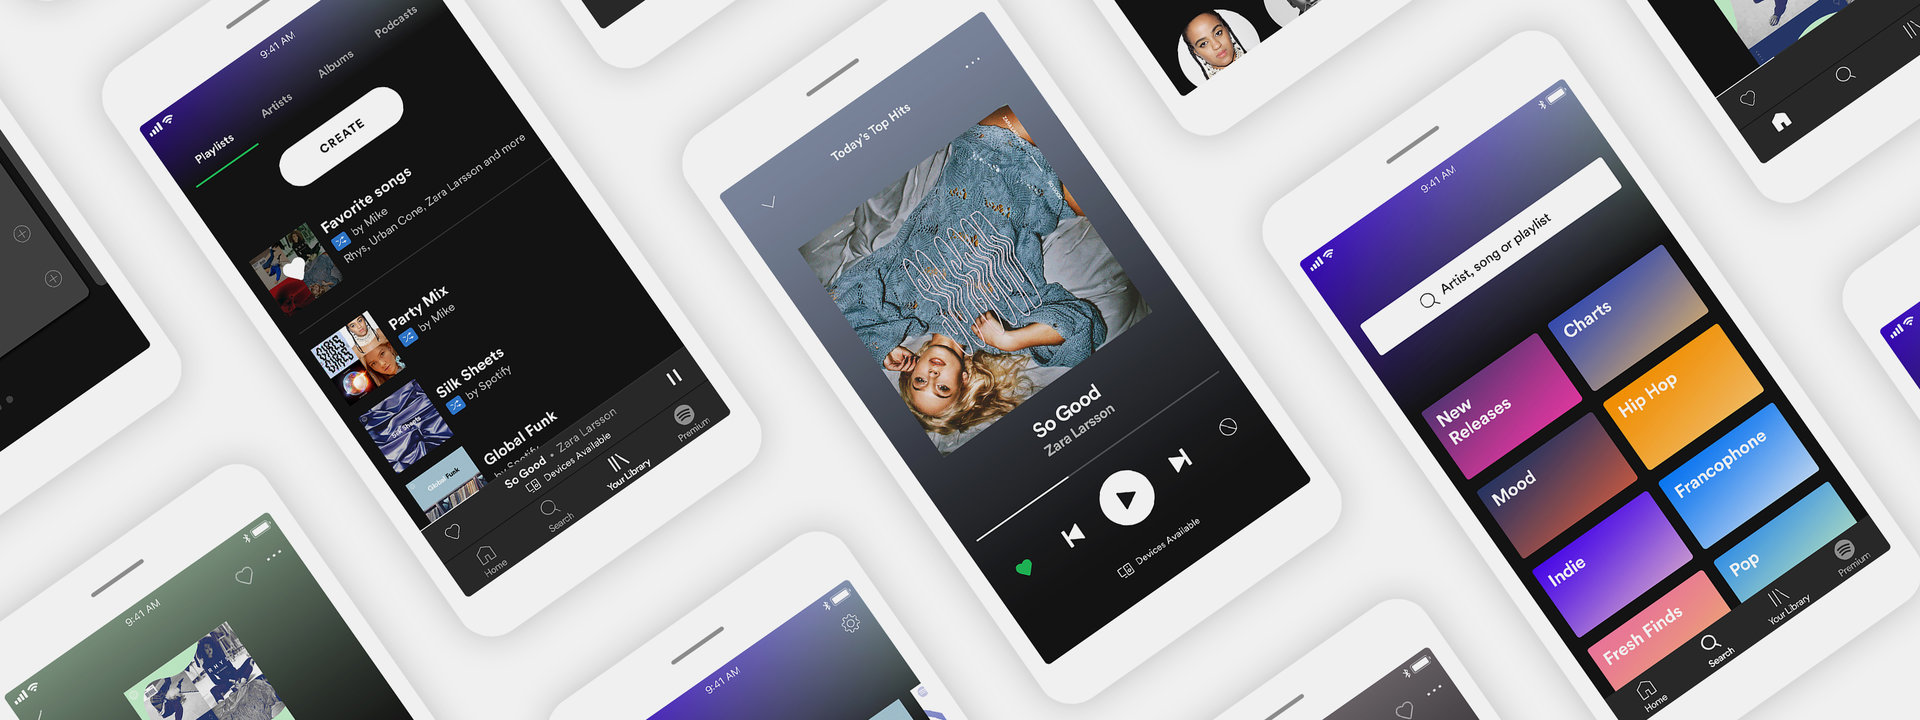 Spotify Announces Enhanced Free Tier, New App Version and More